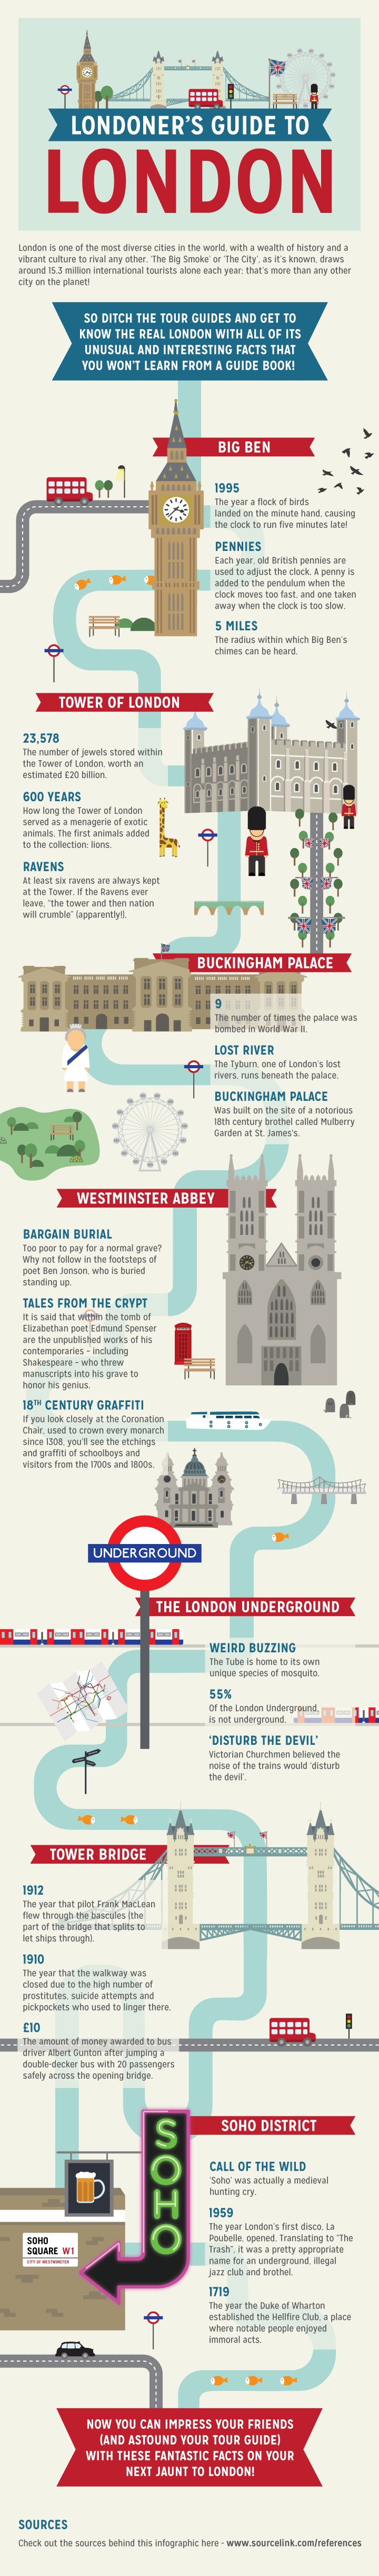 7 londoners-guide-to-london